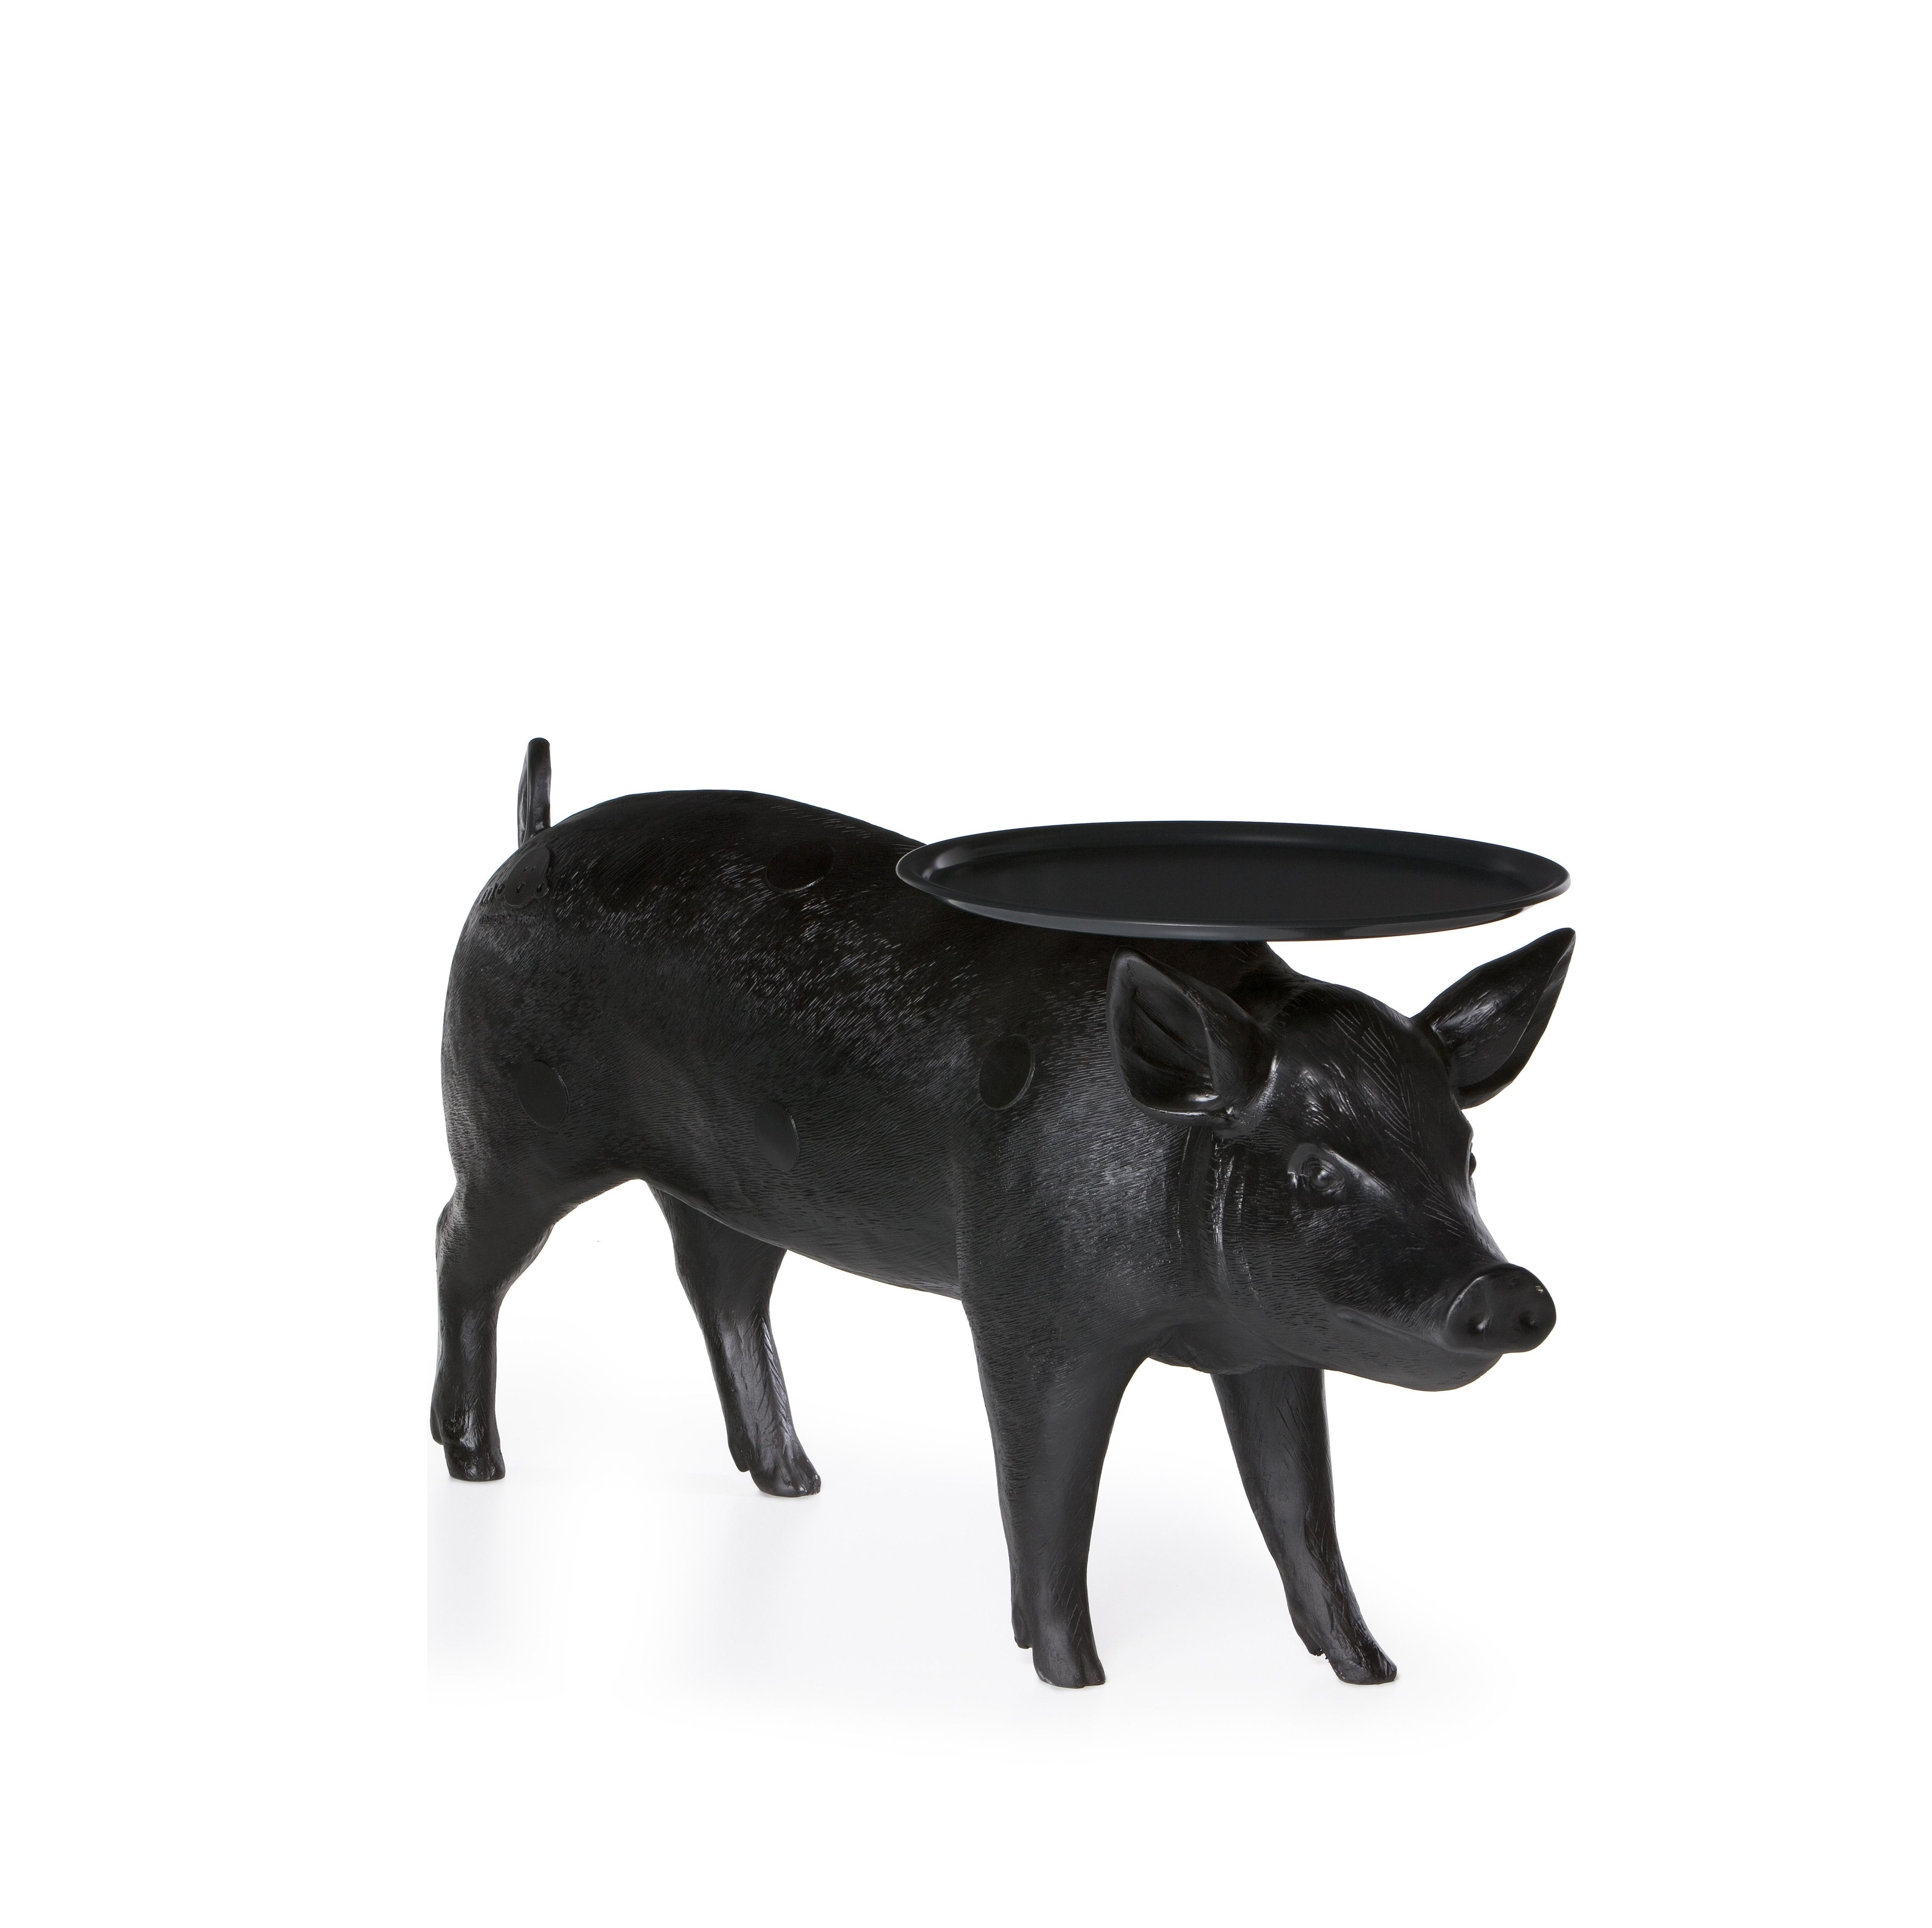 Pig Lamp Table Plata Import